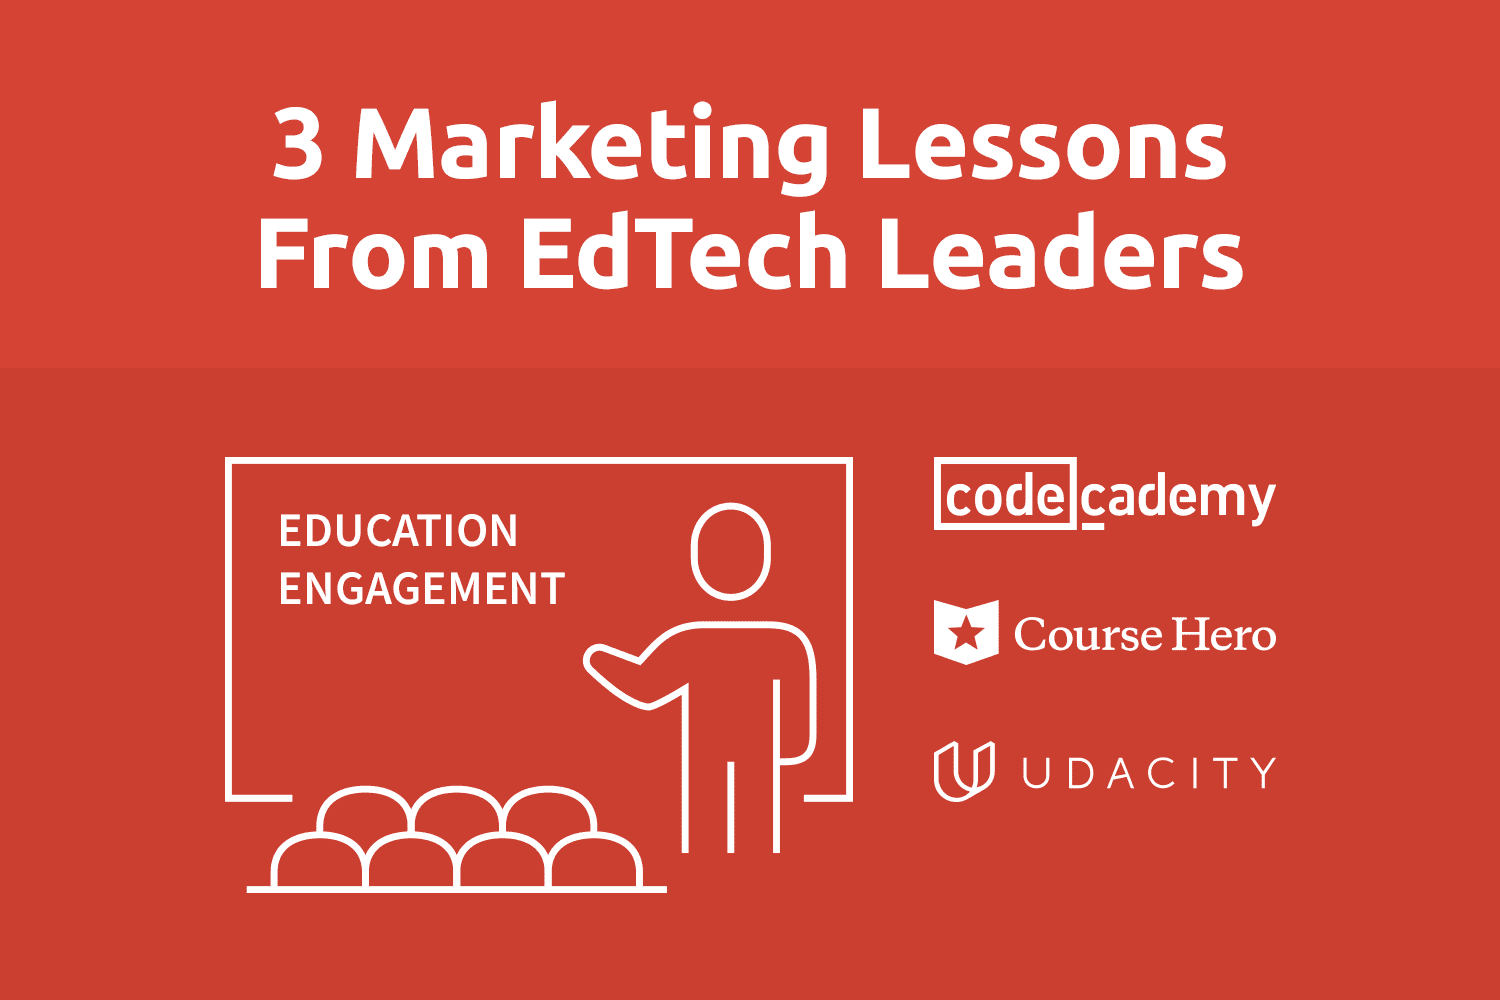 3 Marketing Lessons Universities Can Take From E-Learning